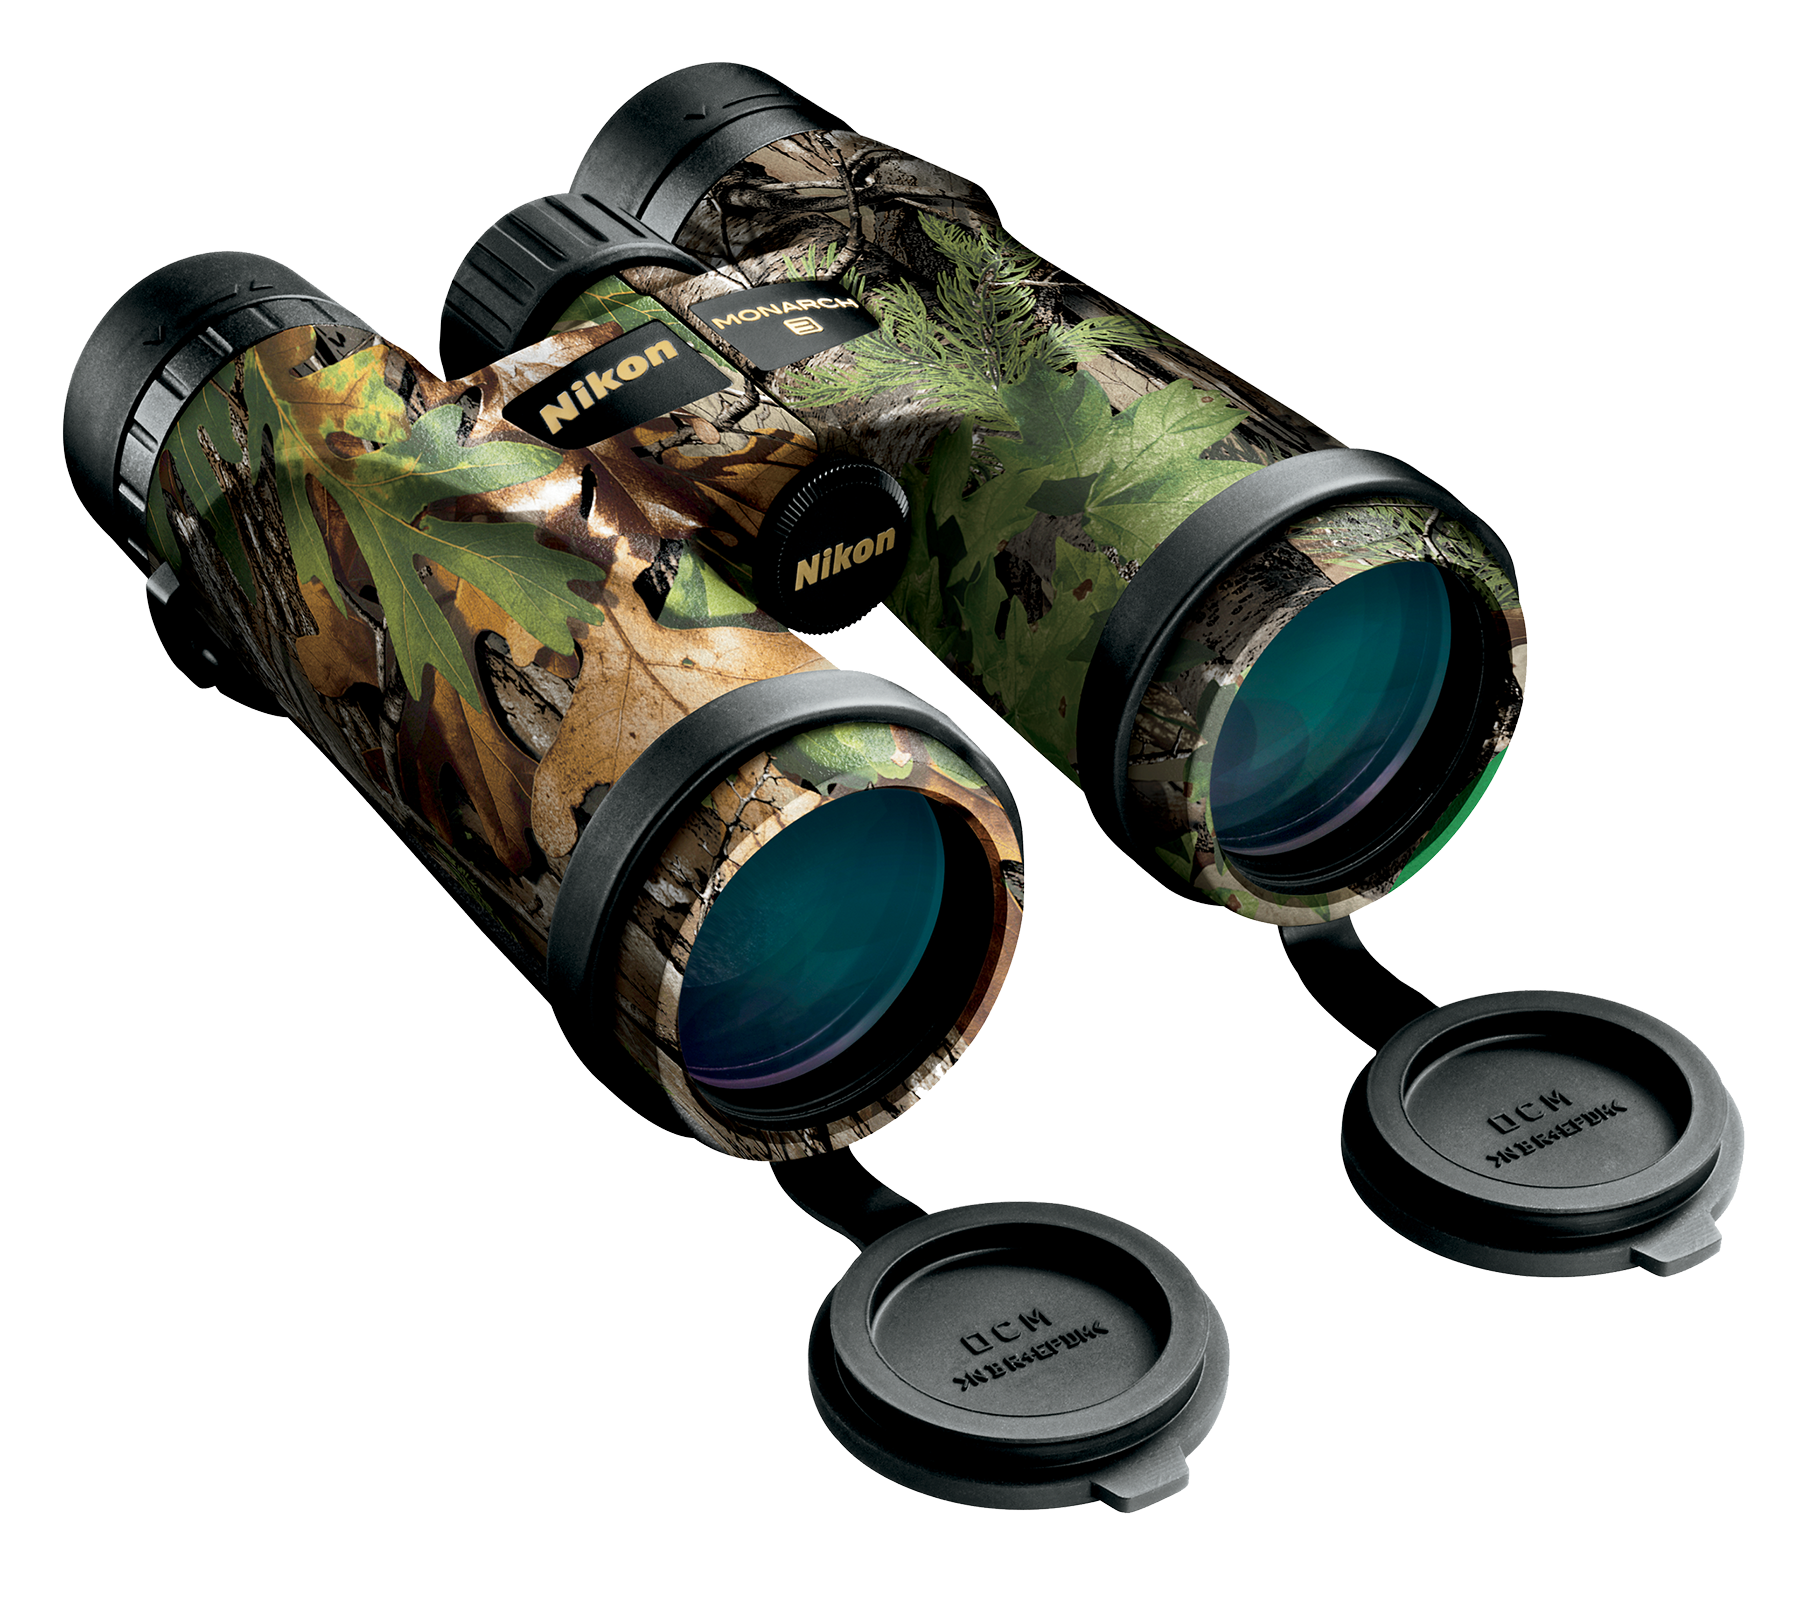 Nikon 16007 Monarch 10x 42mm 330 ft @ 1000 yds FOV 24.1mm Eye Relief Realtree Xtra Green